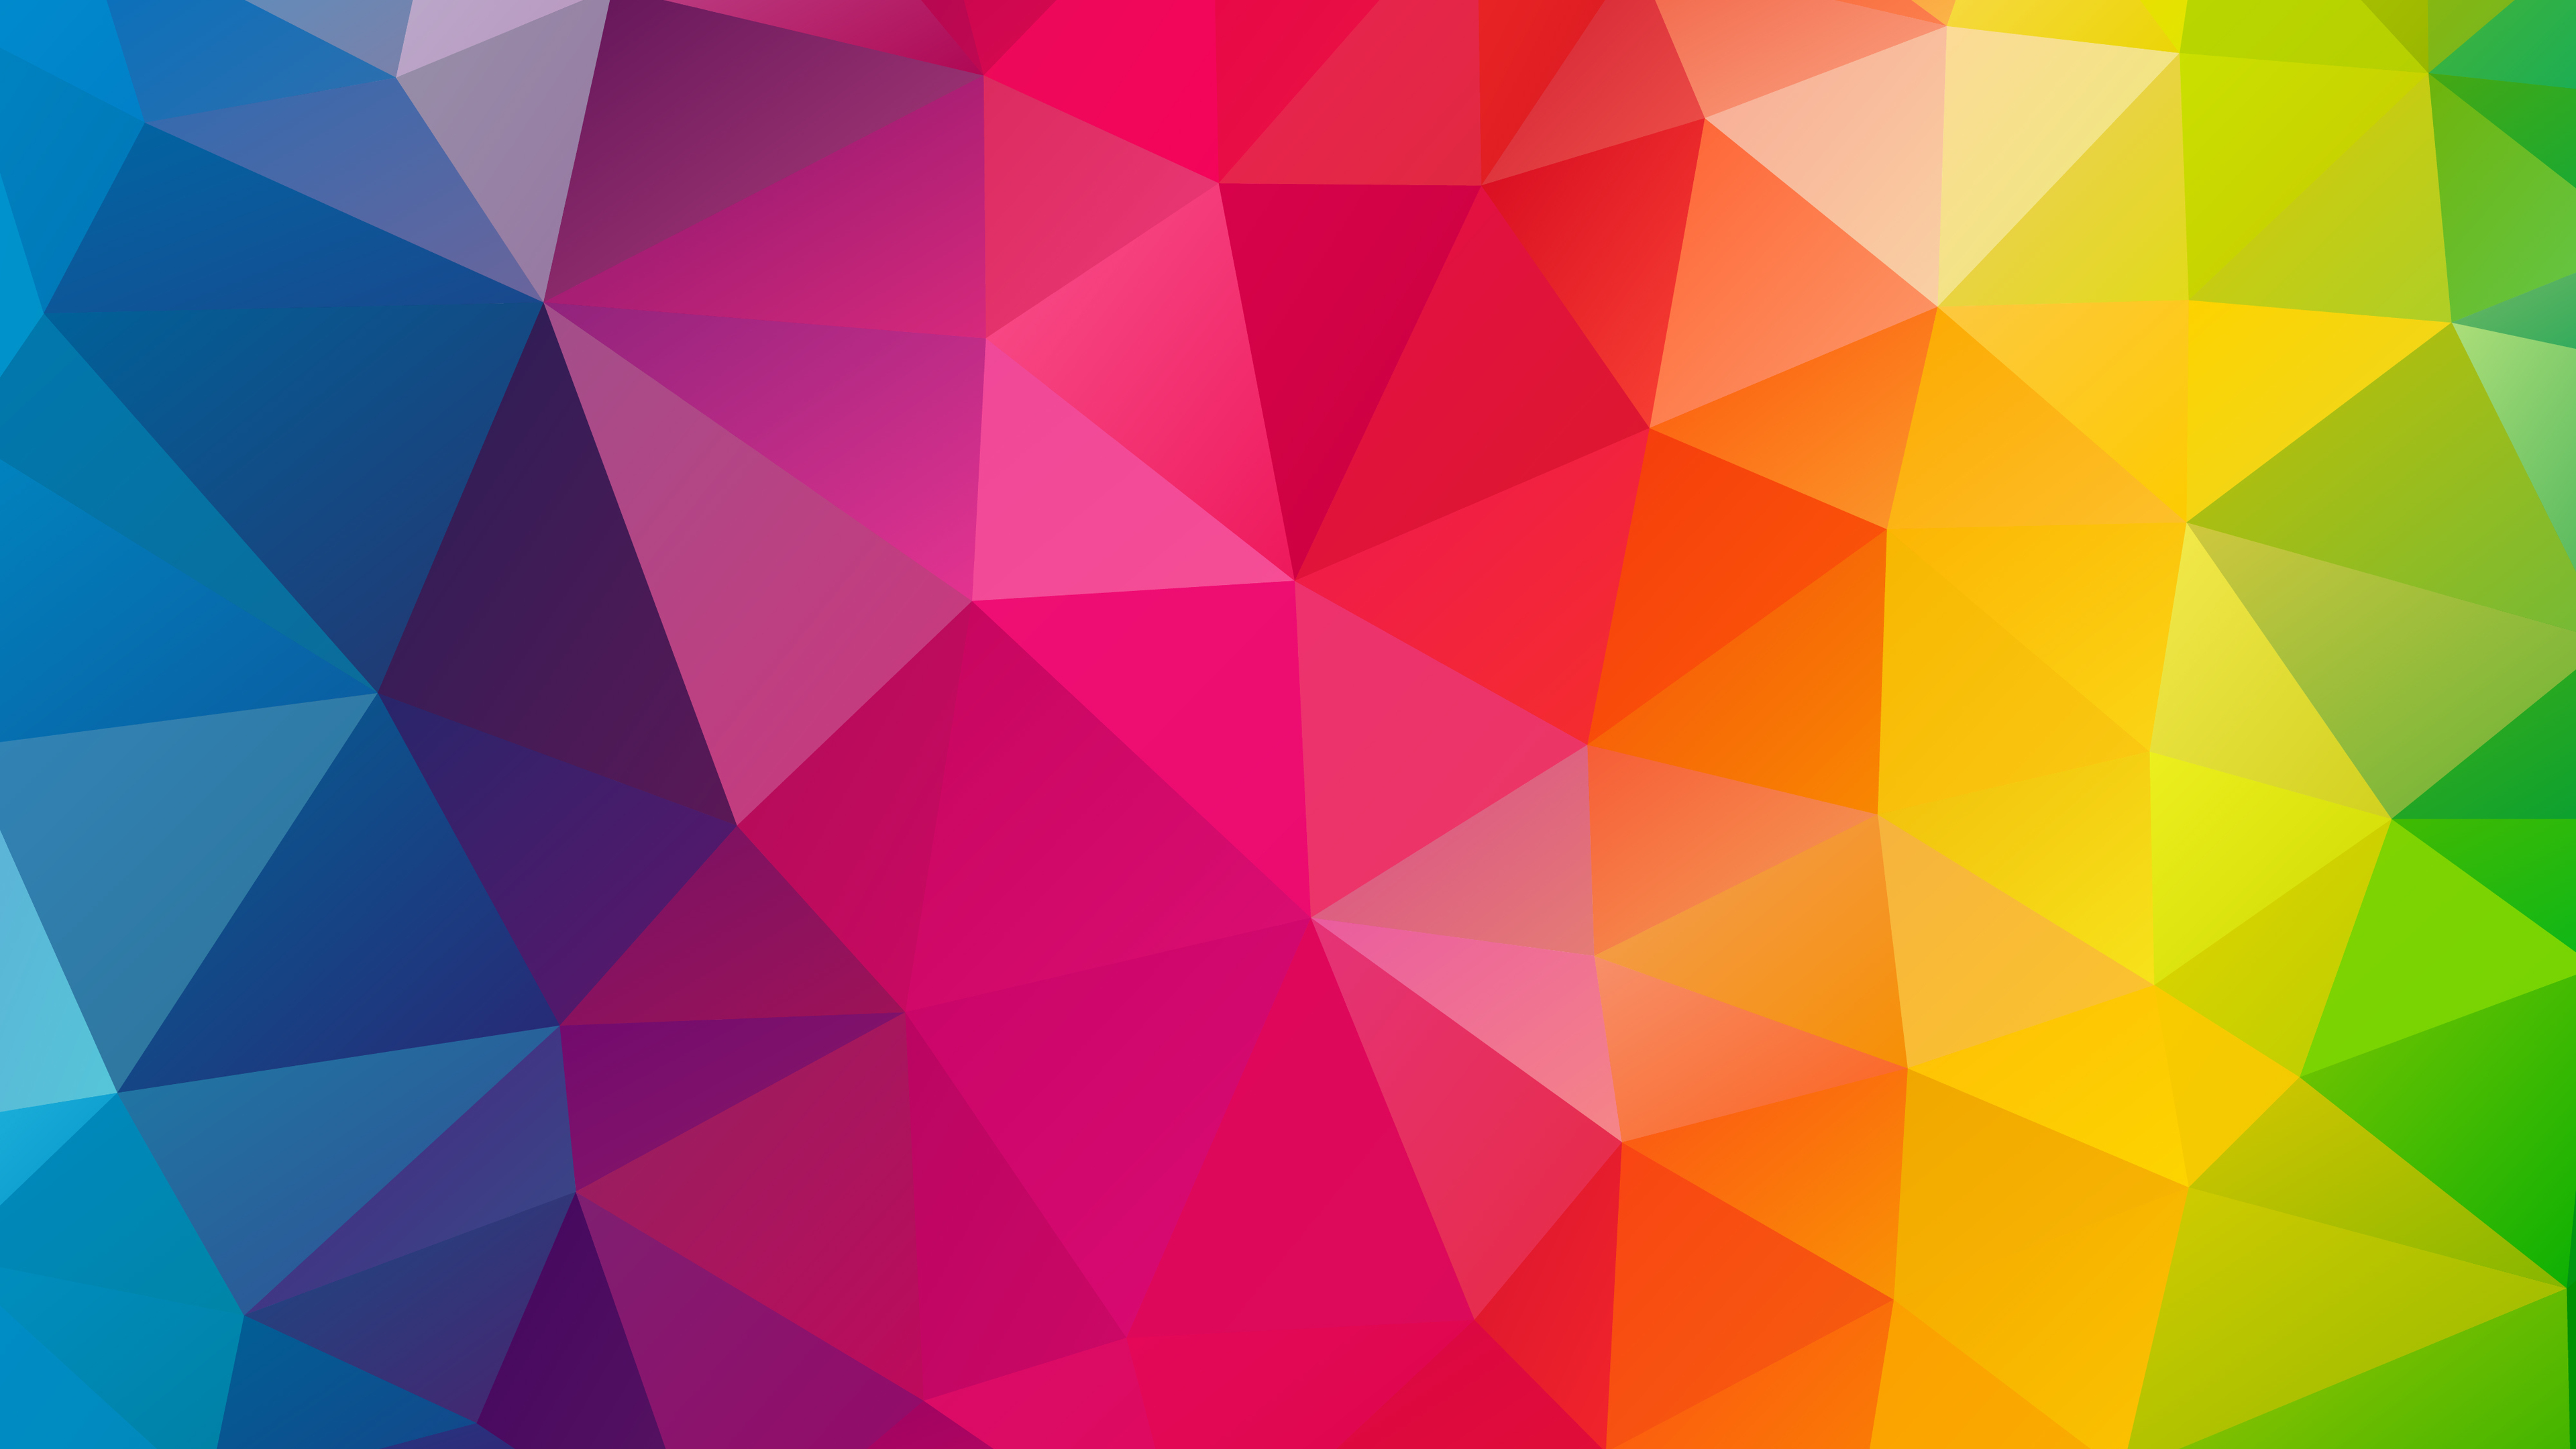 triangles colorful background 1539370936 - Triangles Colorful Background - triangle wallpapers, hd-wallpapers, colorful wallpapers, background wallpapers, abstract wallpapers, 4k-wallpapers